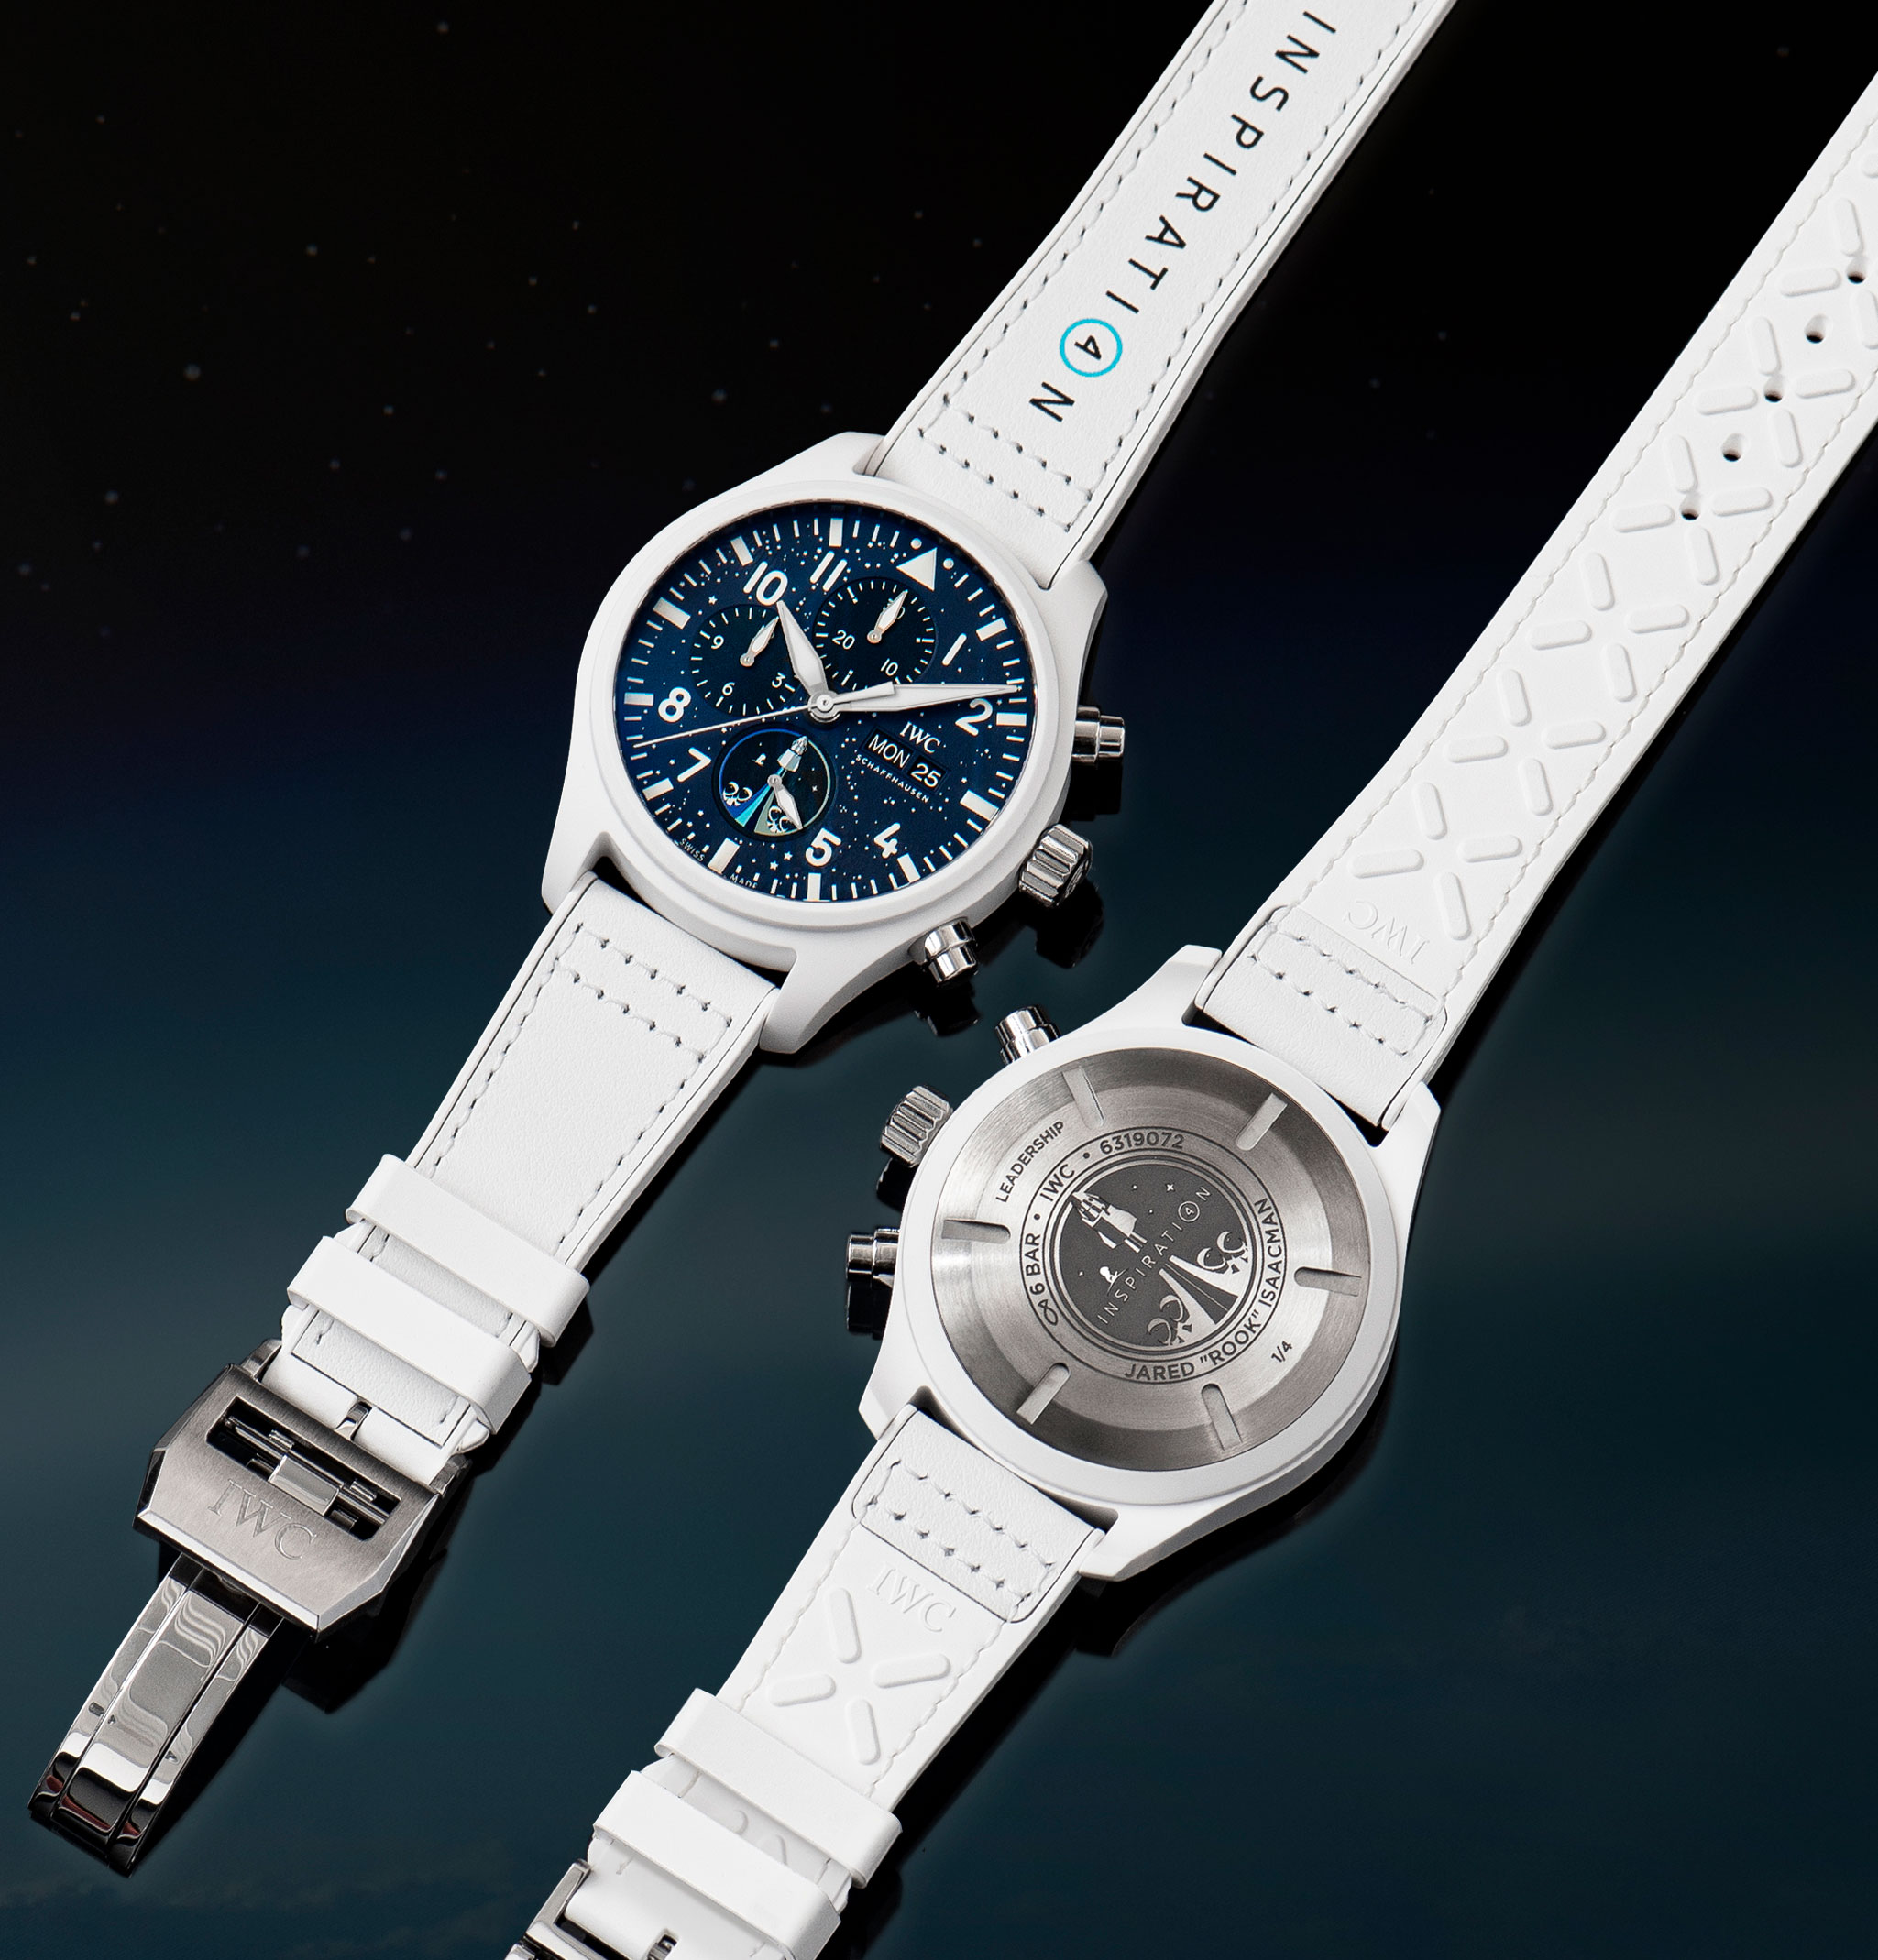 Frontal y reverso del IWC Inspiration4 Chronograph